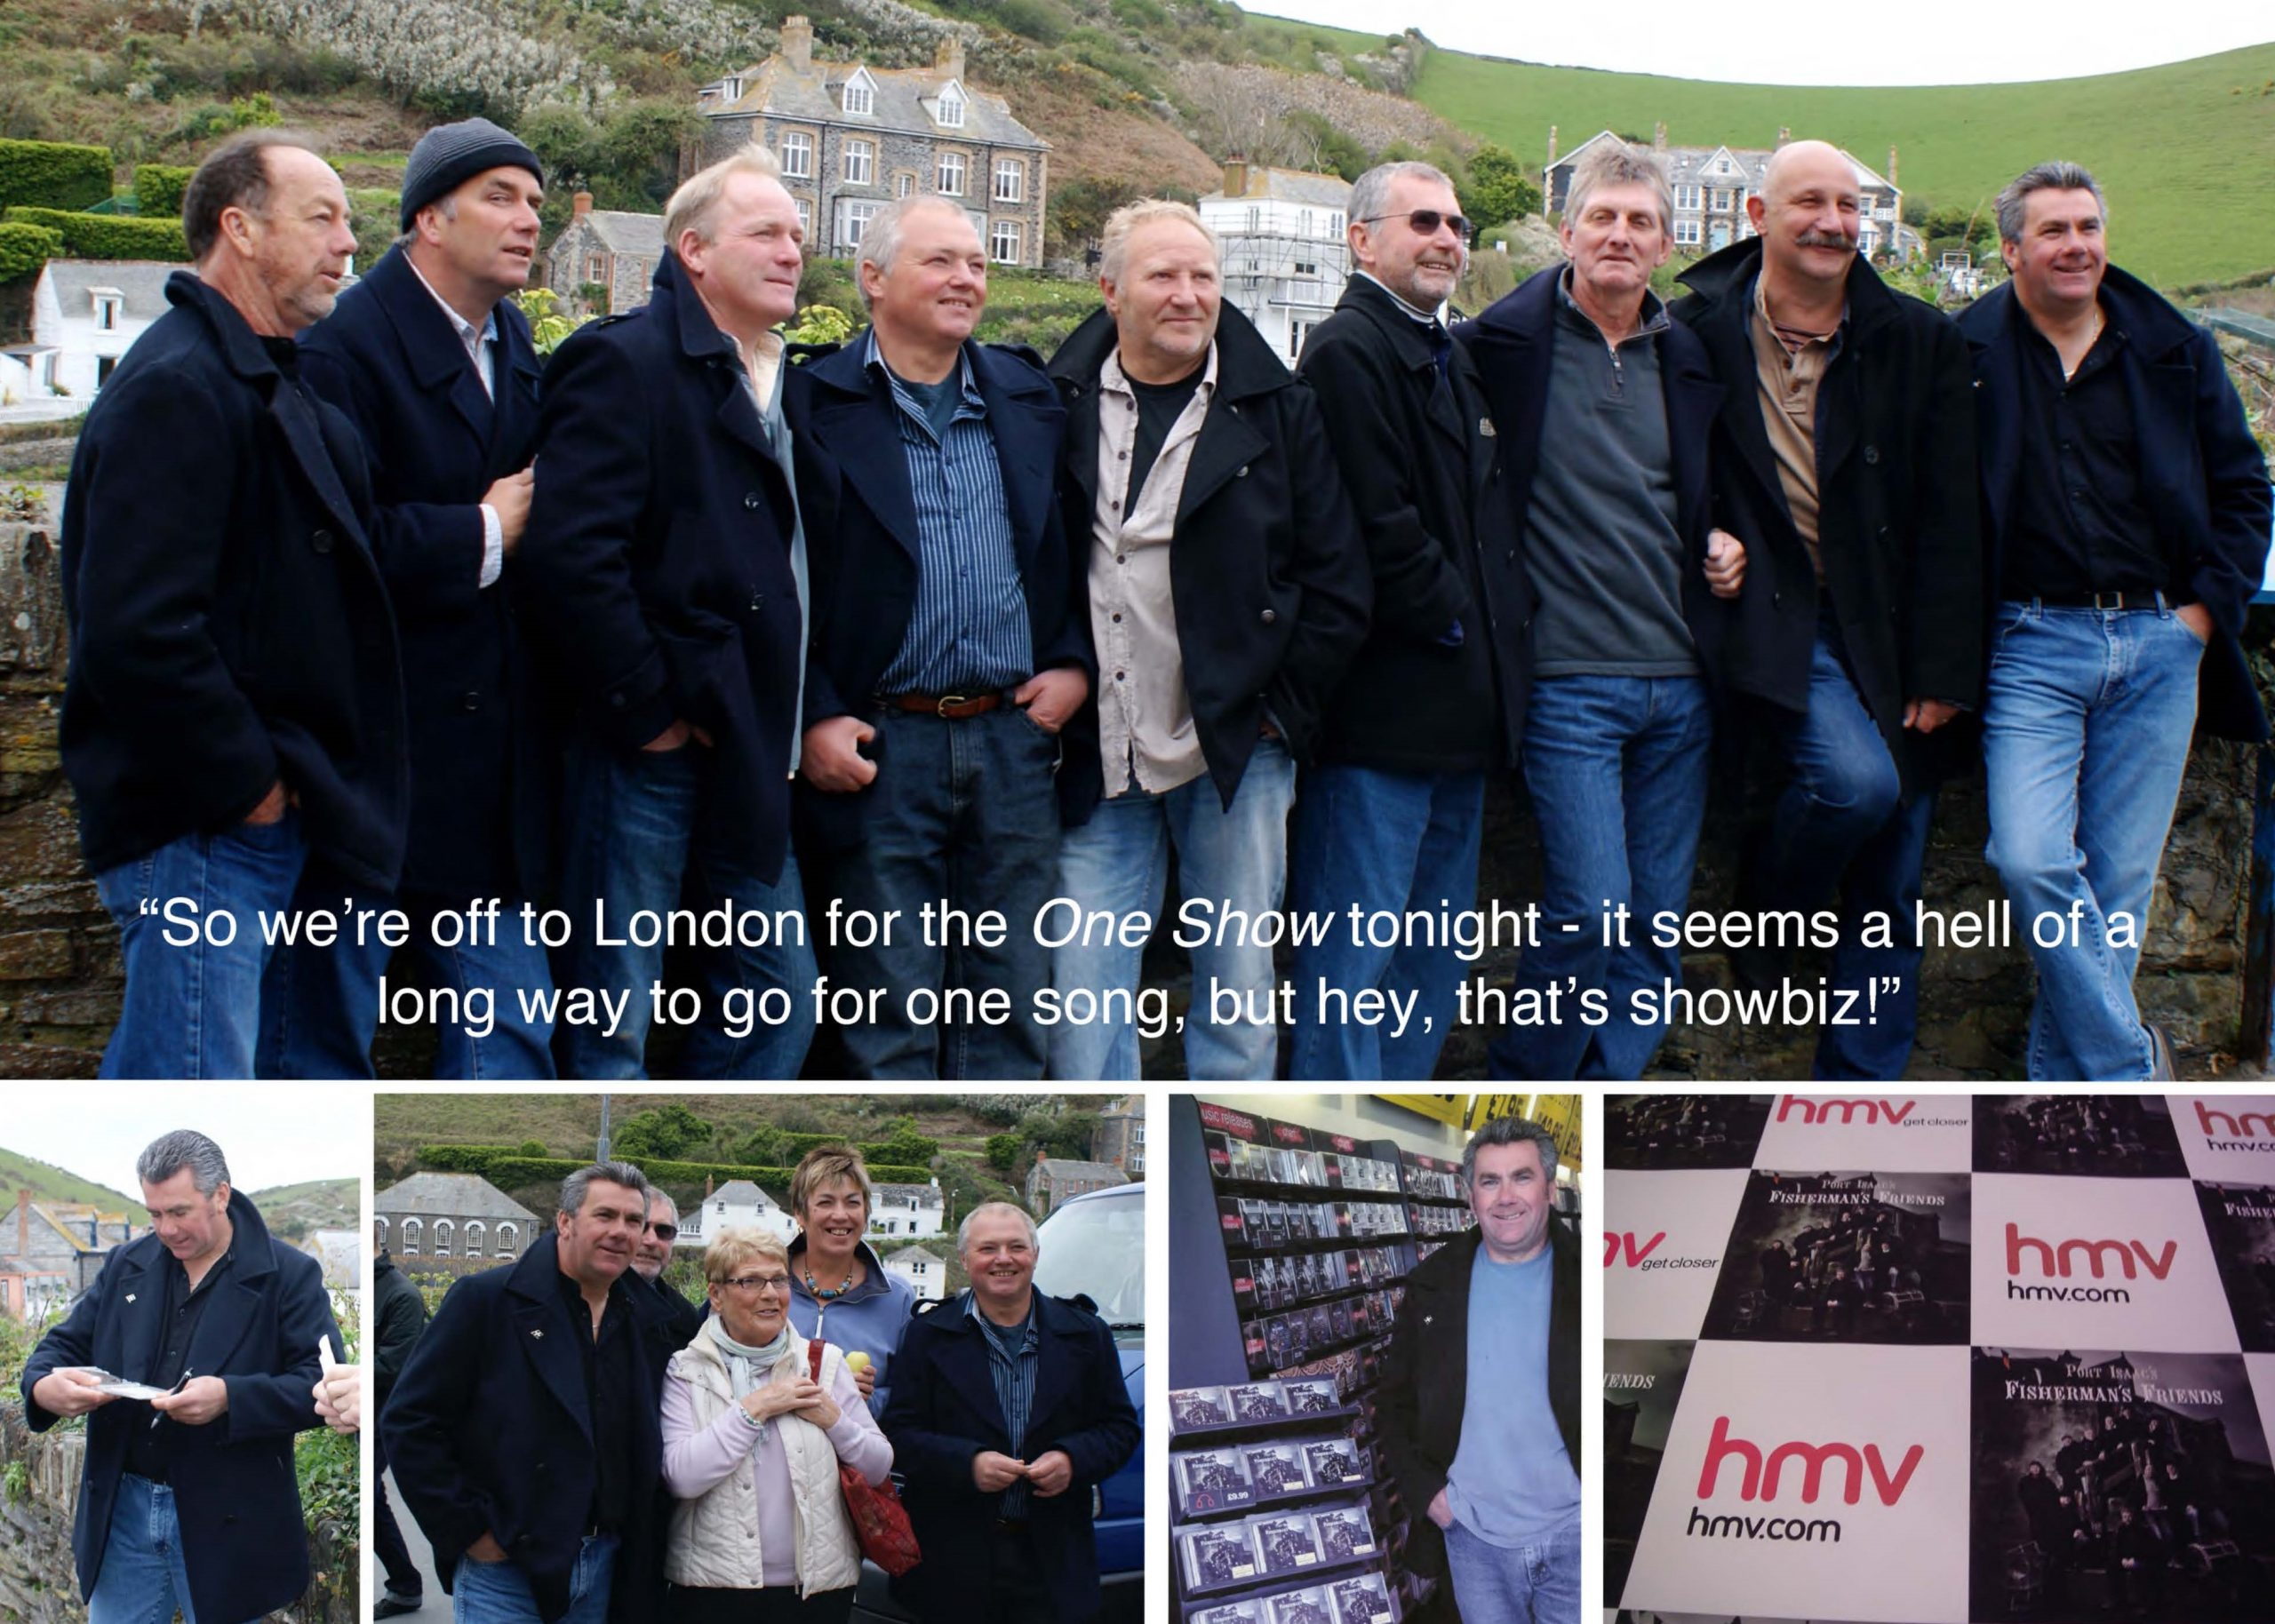 Appearing on BBC's The One Show, and winning the BBC Radio 2 Folk Awards